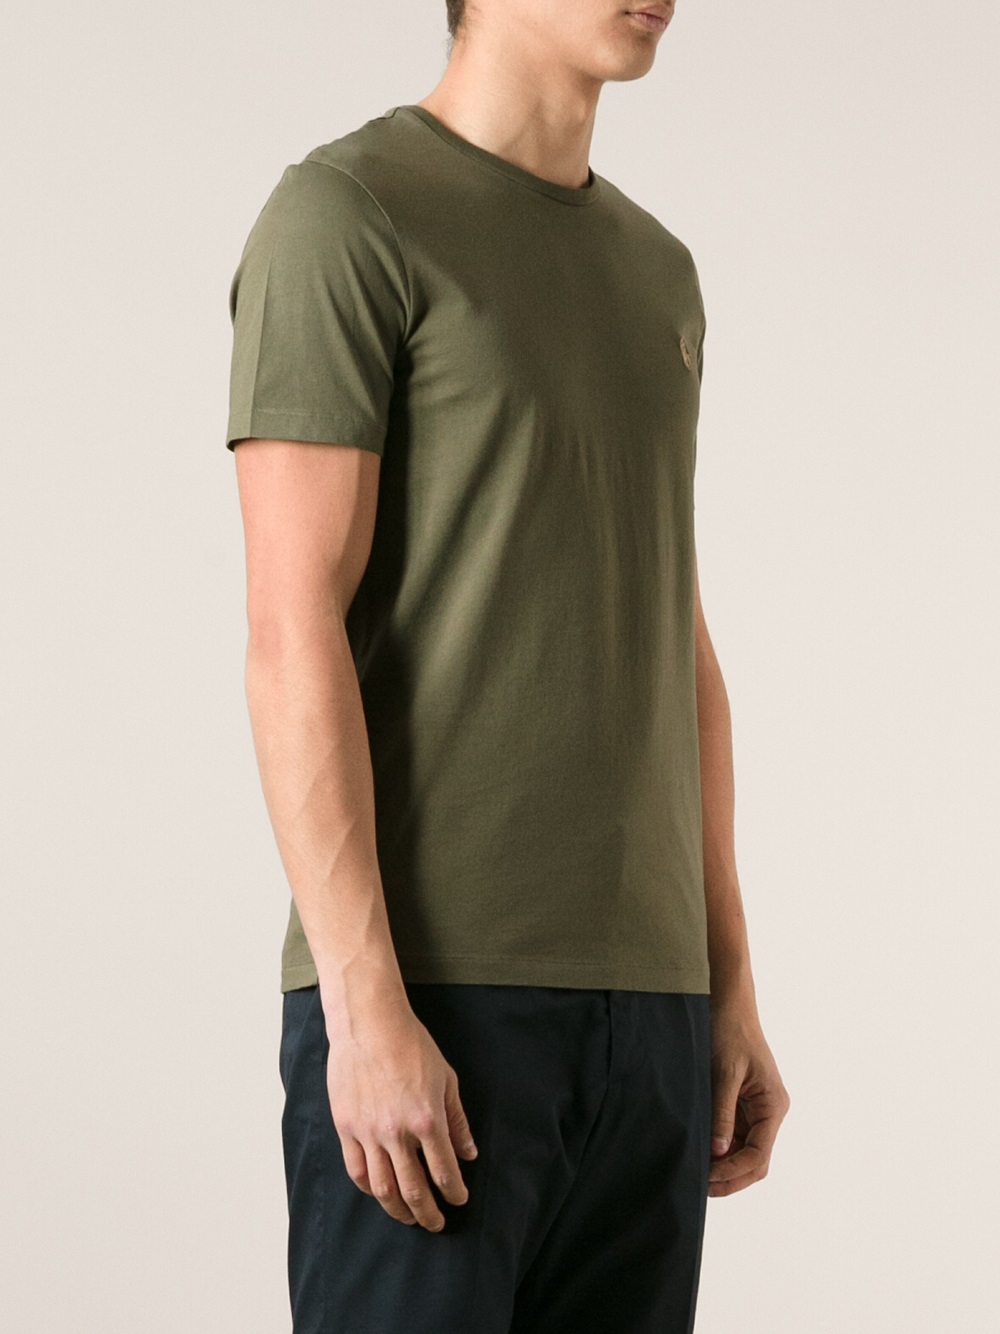 lyst polo ralph lauren custom fit tshirt in green for men. Black Bedroom Furniture Sets. Home Design Ideas